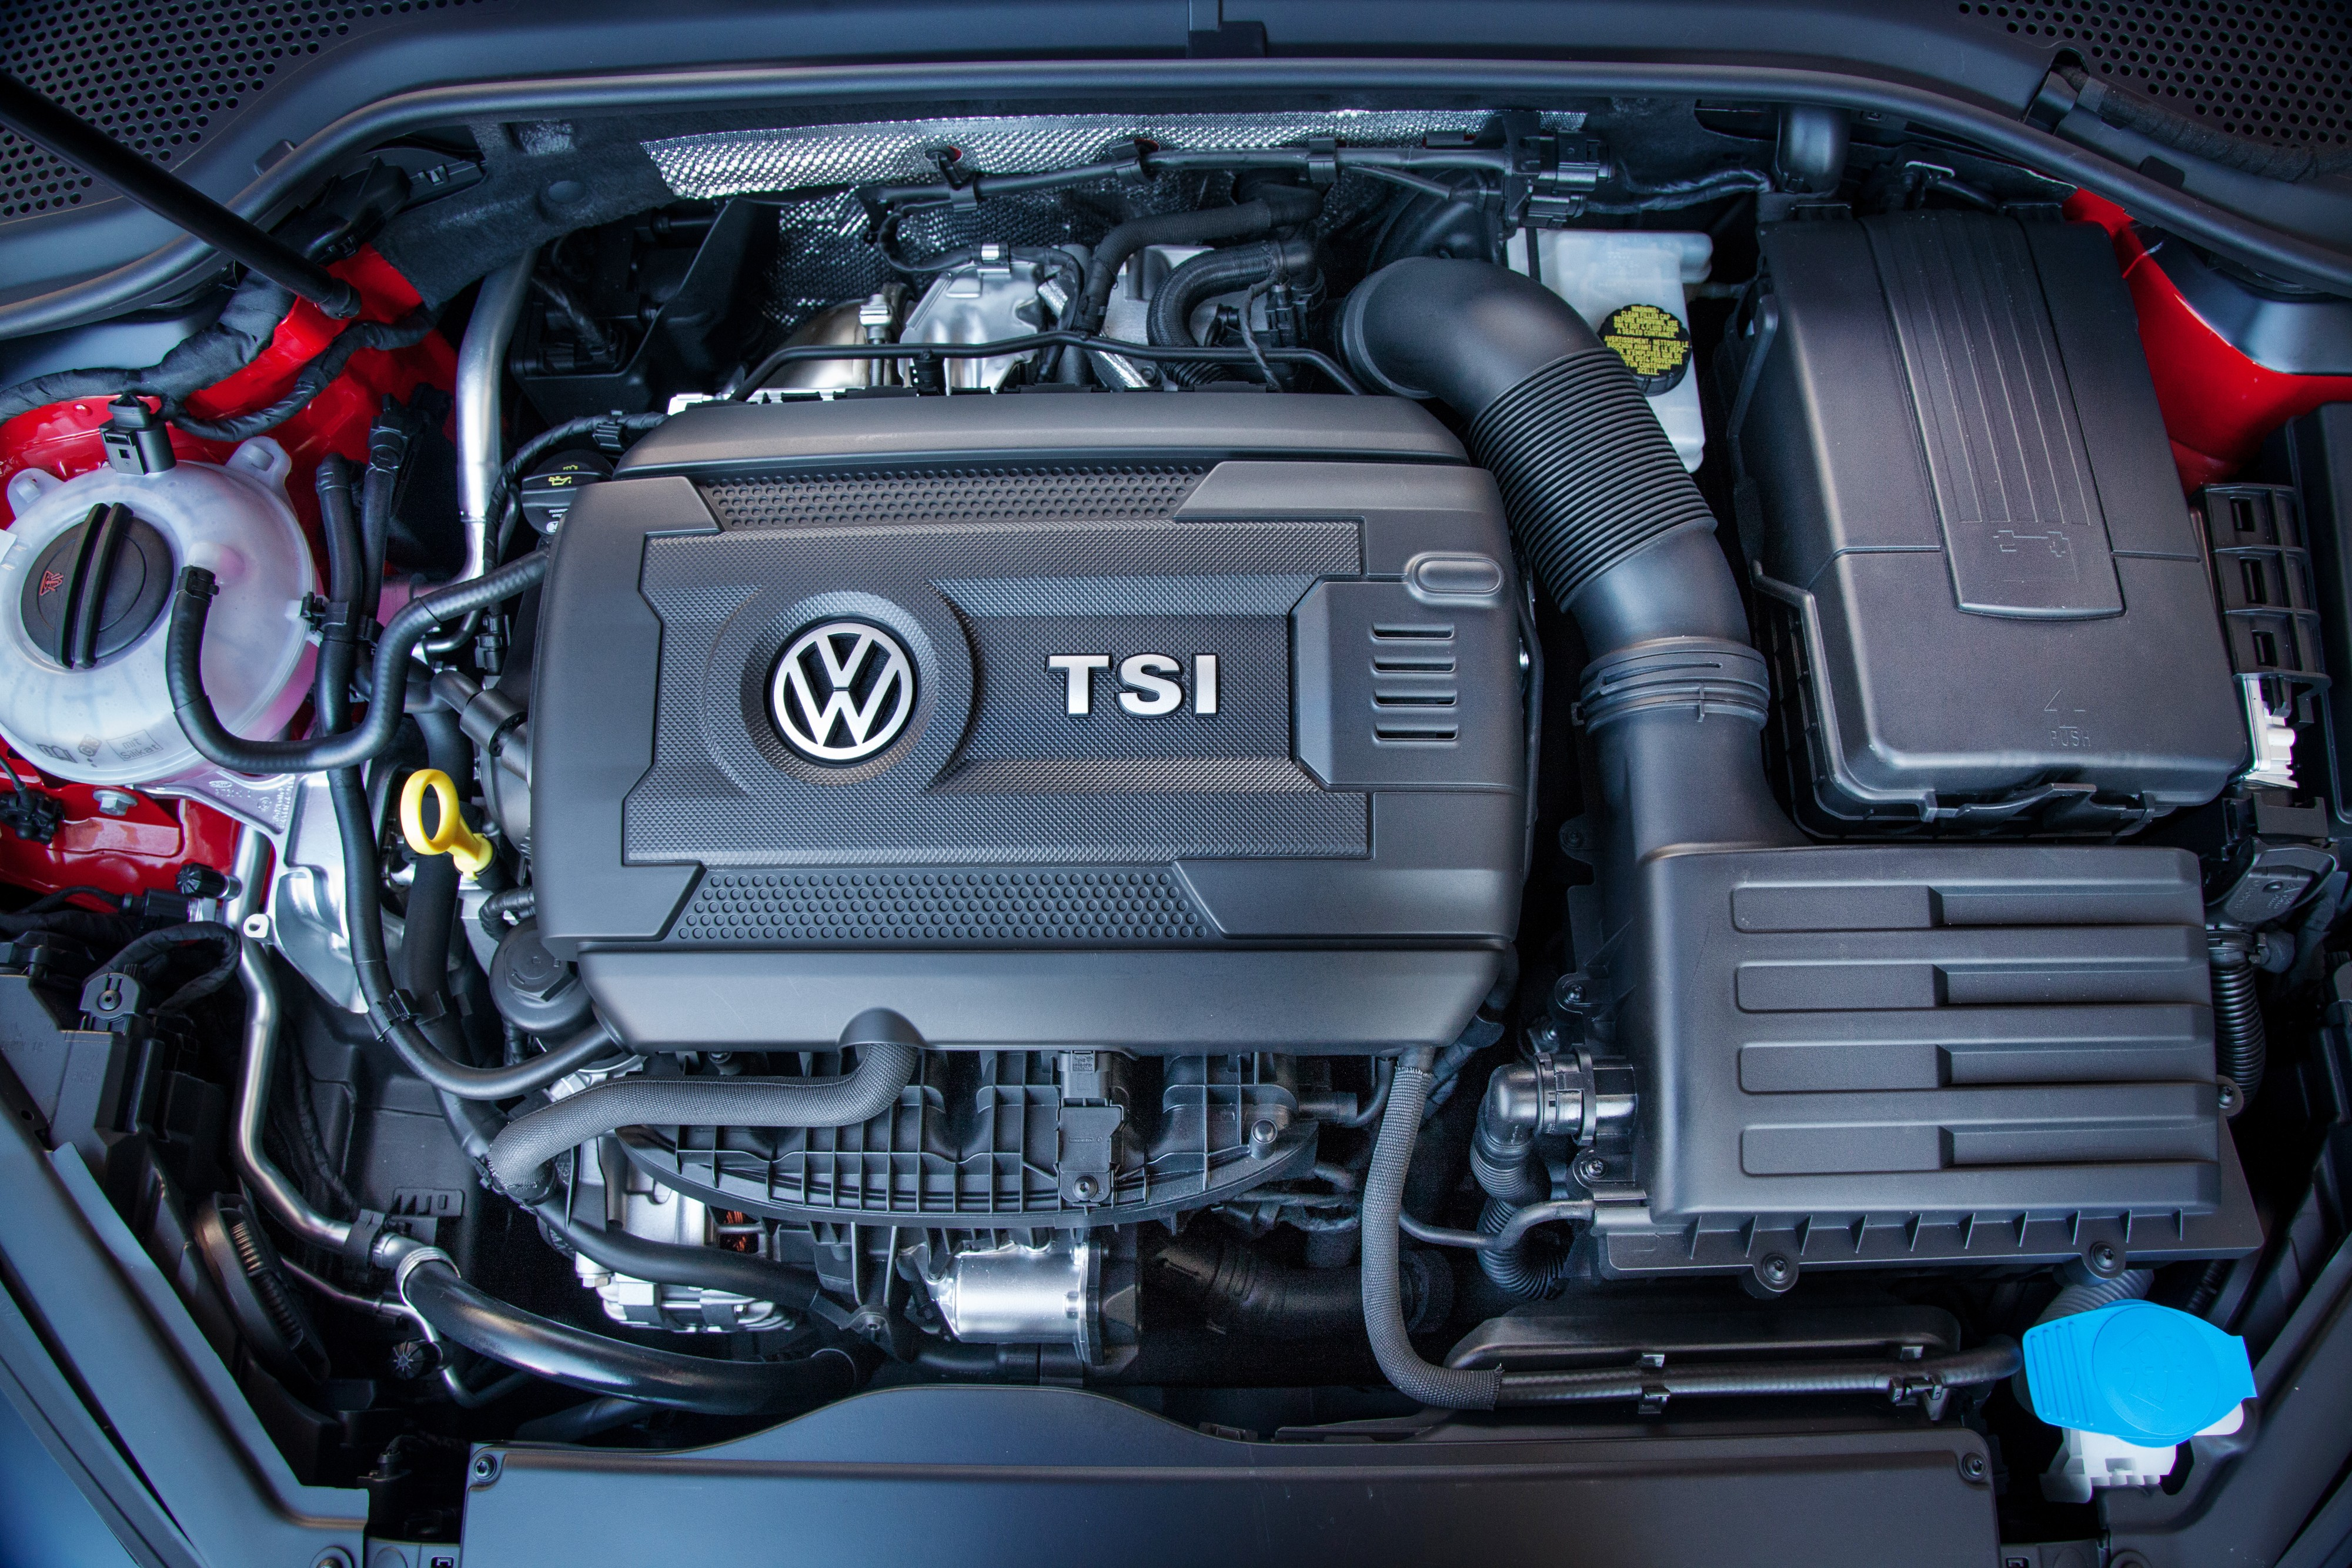 2 0 Tsi Engine Diagram 2 Vw Gti Tsi Engine Diagram Another Blog About Wiring Diagram • Of 2 0 Tsi Engine Diagram 2